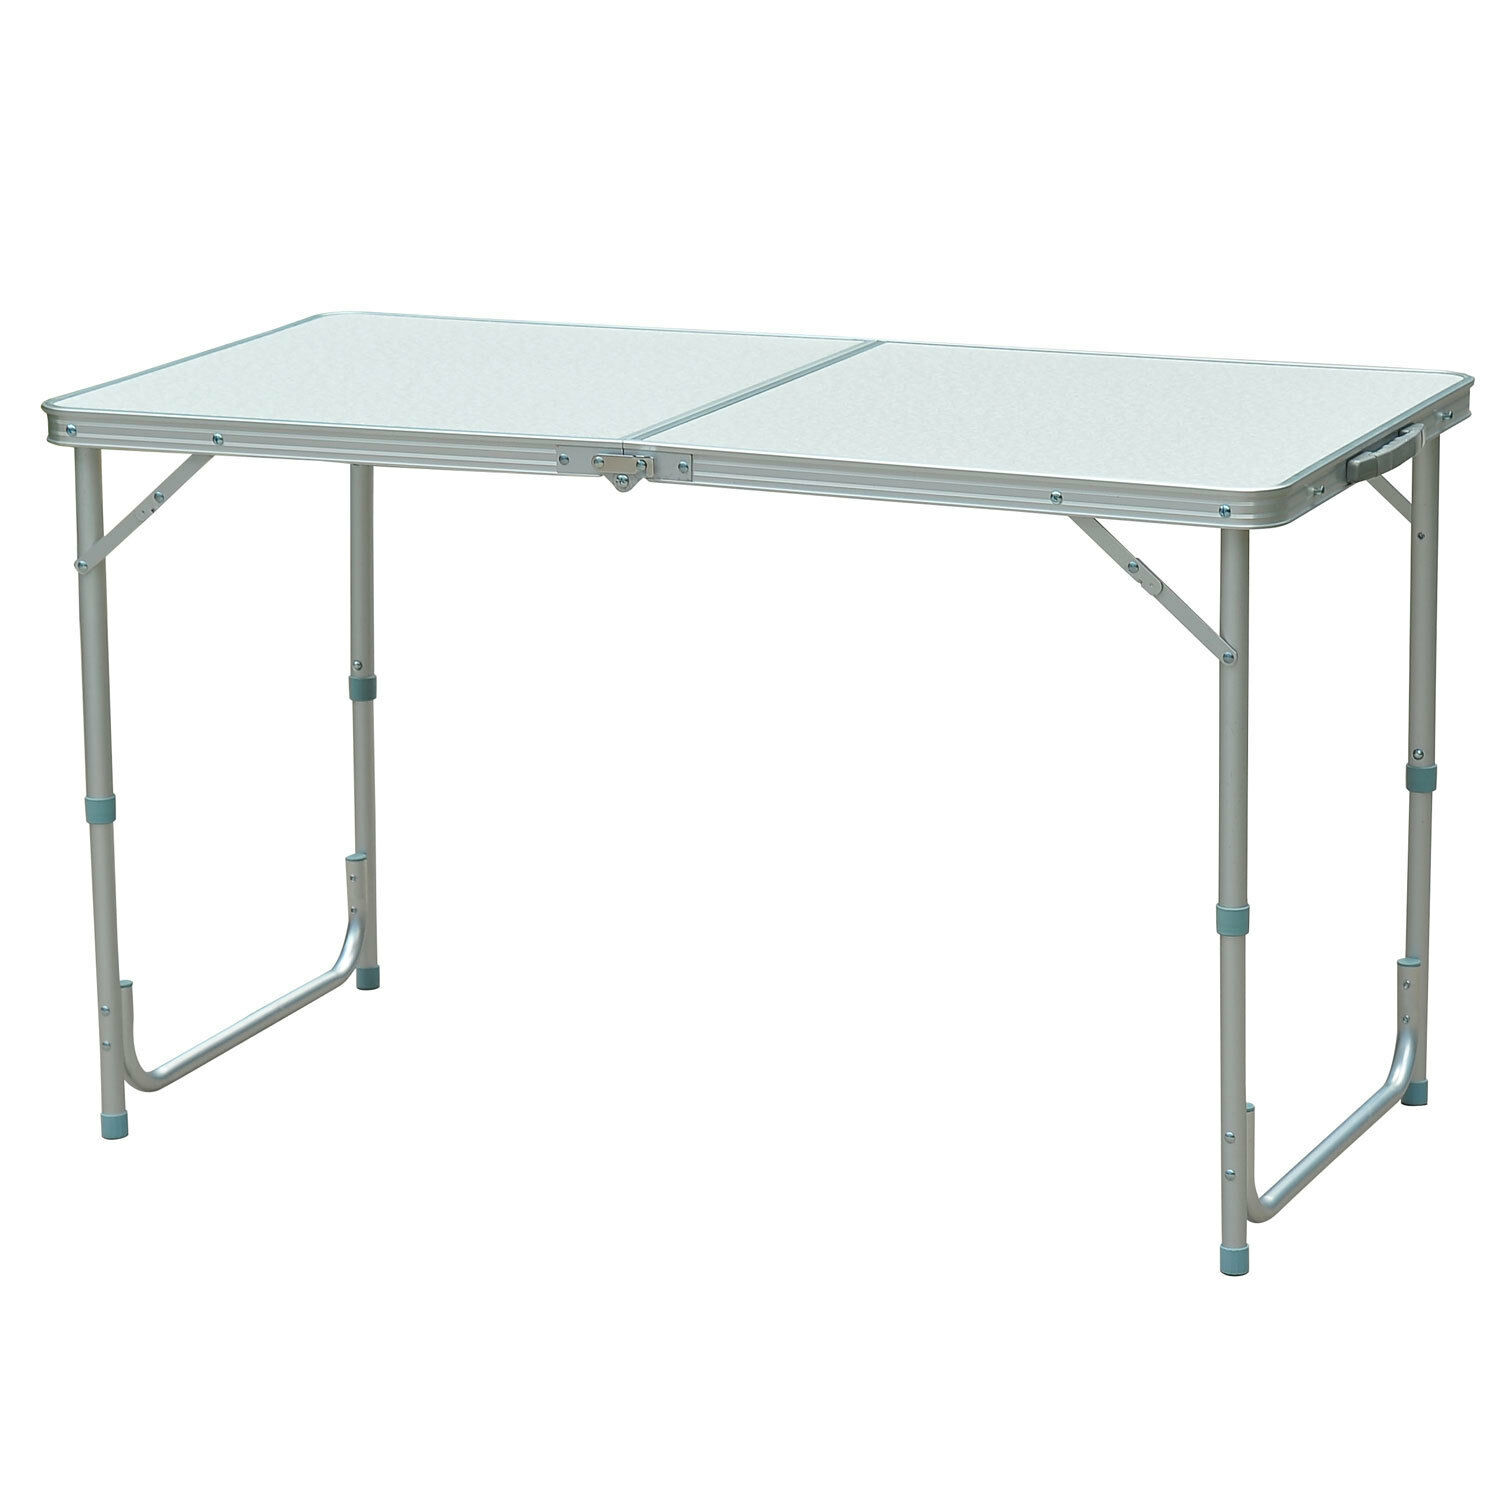 Aluminum Folding Camping Table Bed Mattress Sale